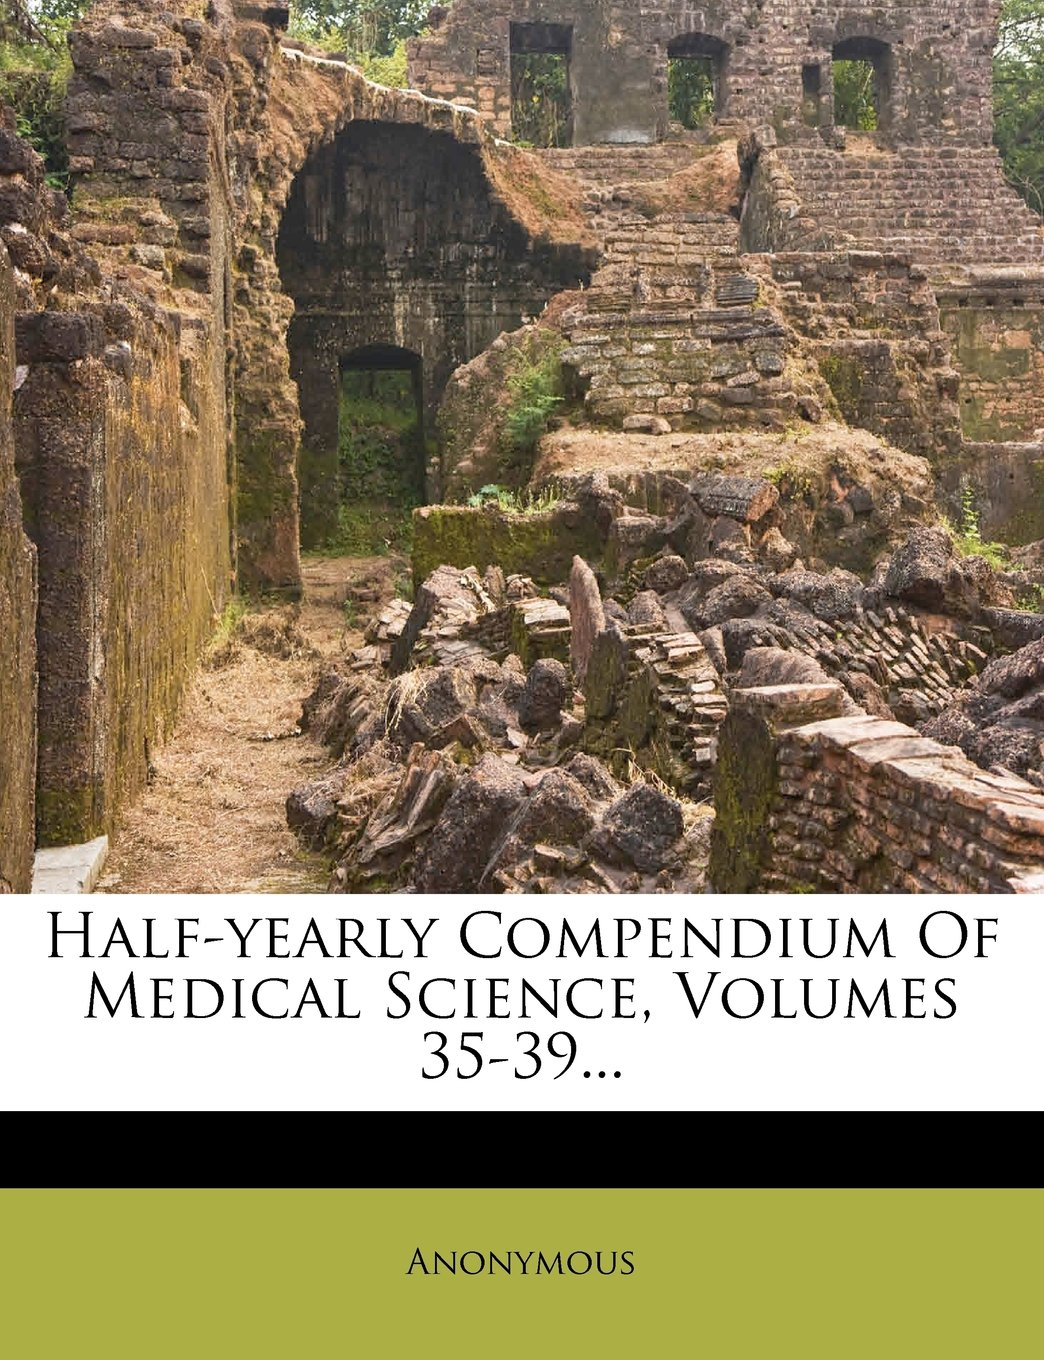 Half-yearly Compendium Of Medical Science, Volumes 35-39... pdf